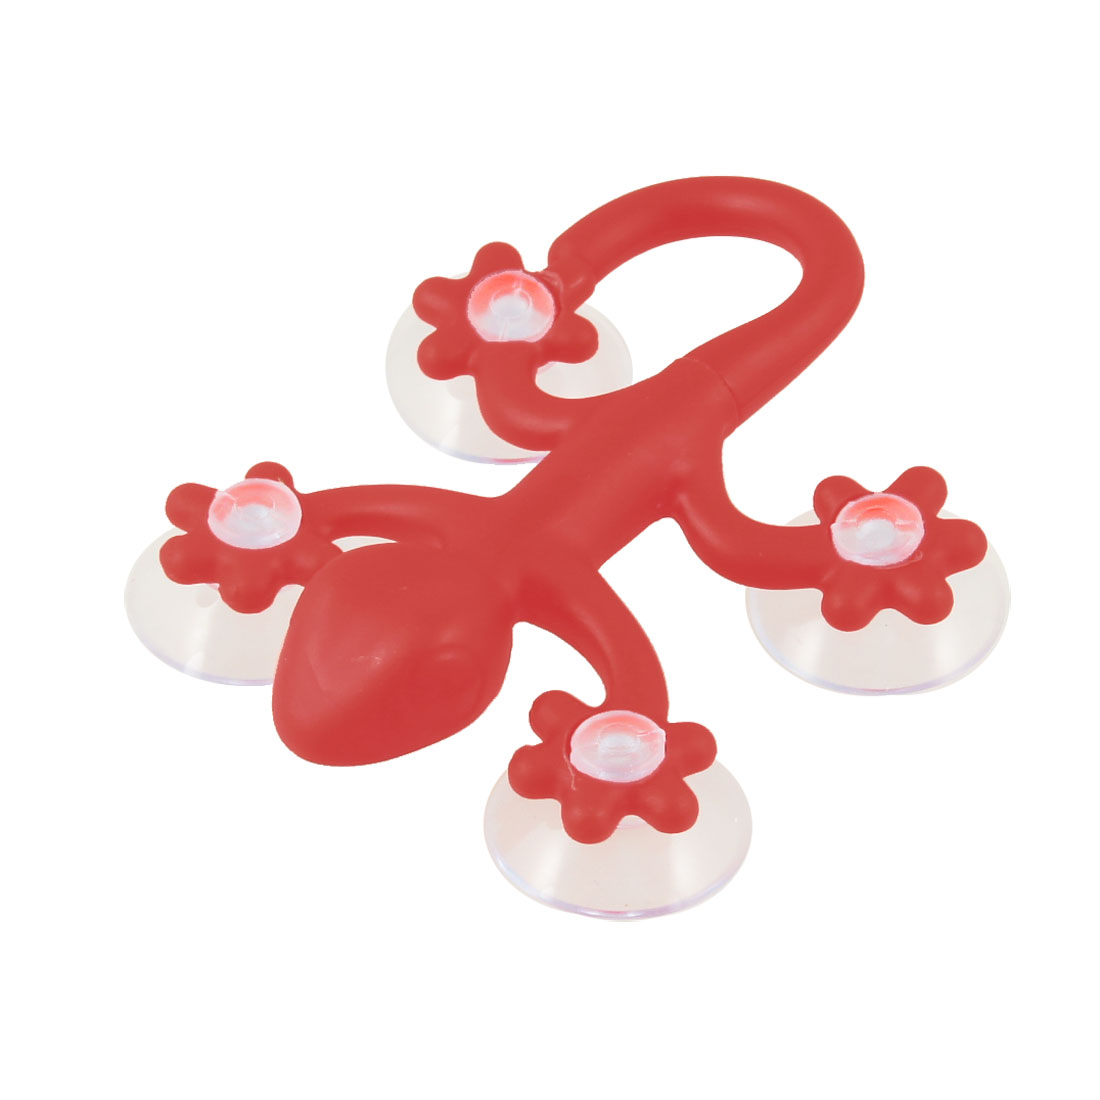 Bathroom Plastic Red Gecko Design Wall Mounted Suction Disc Hook